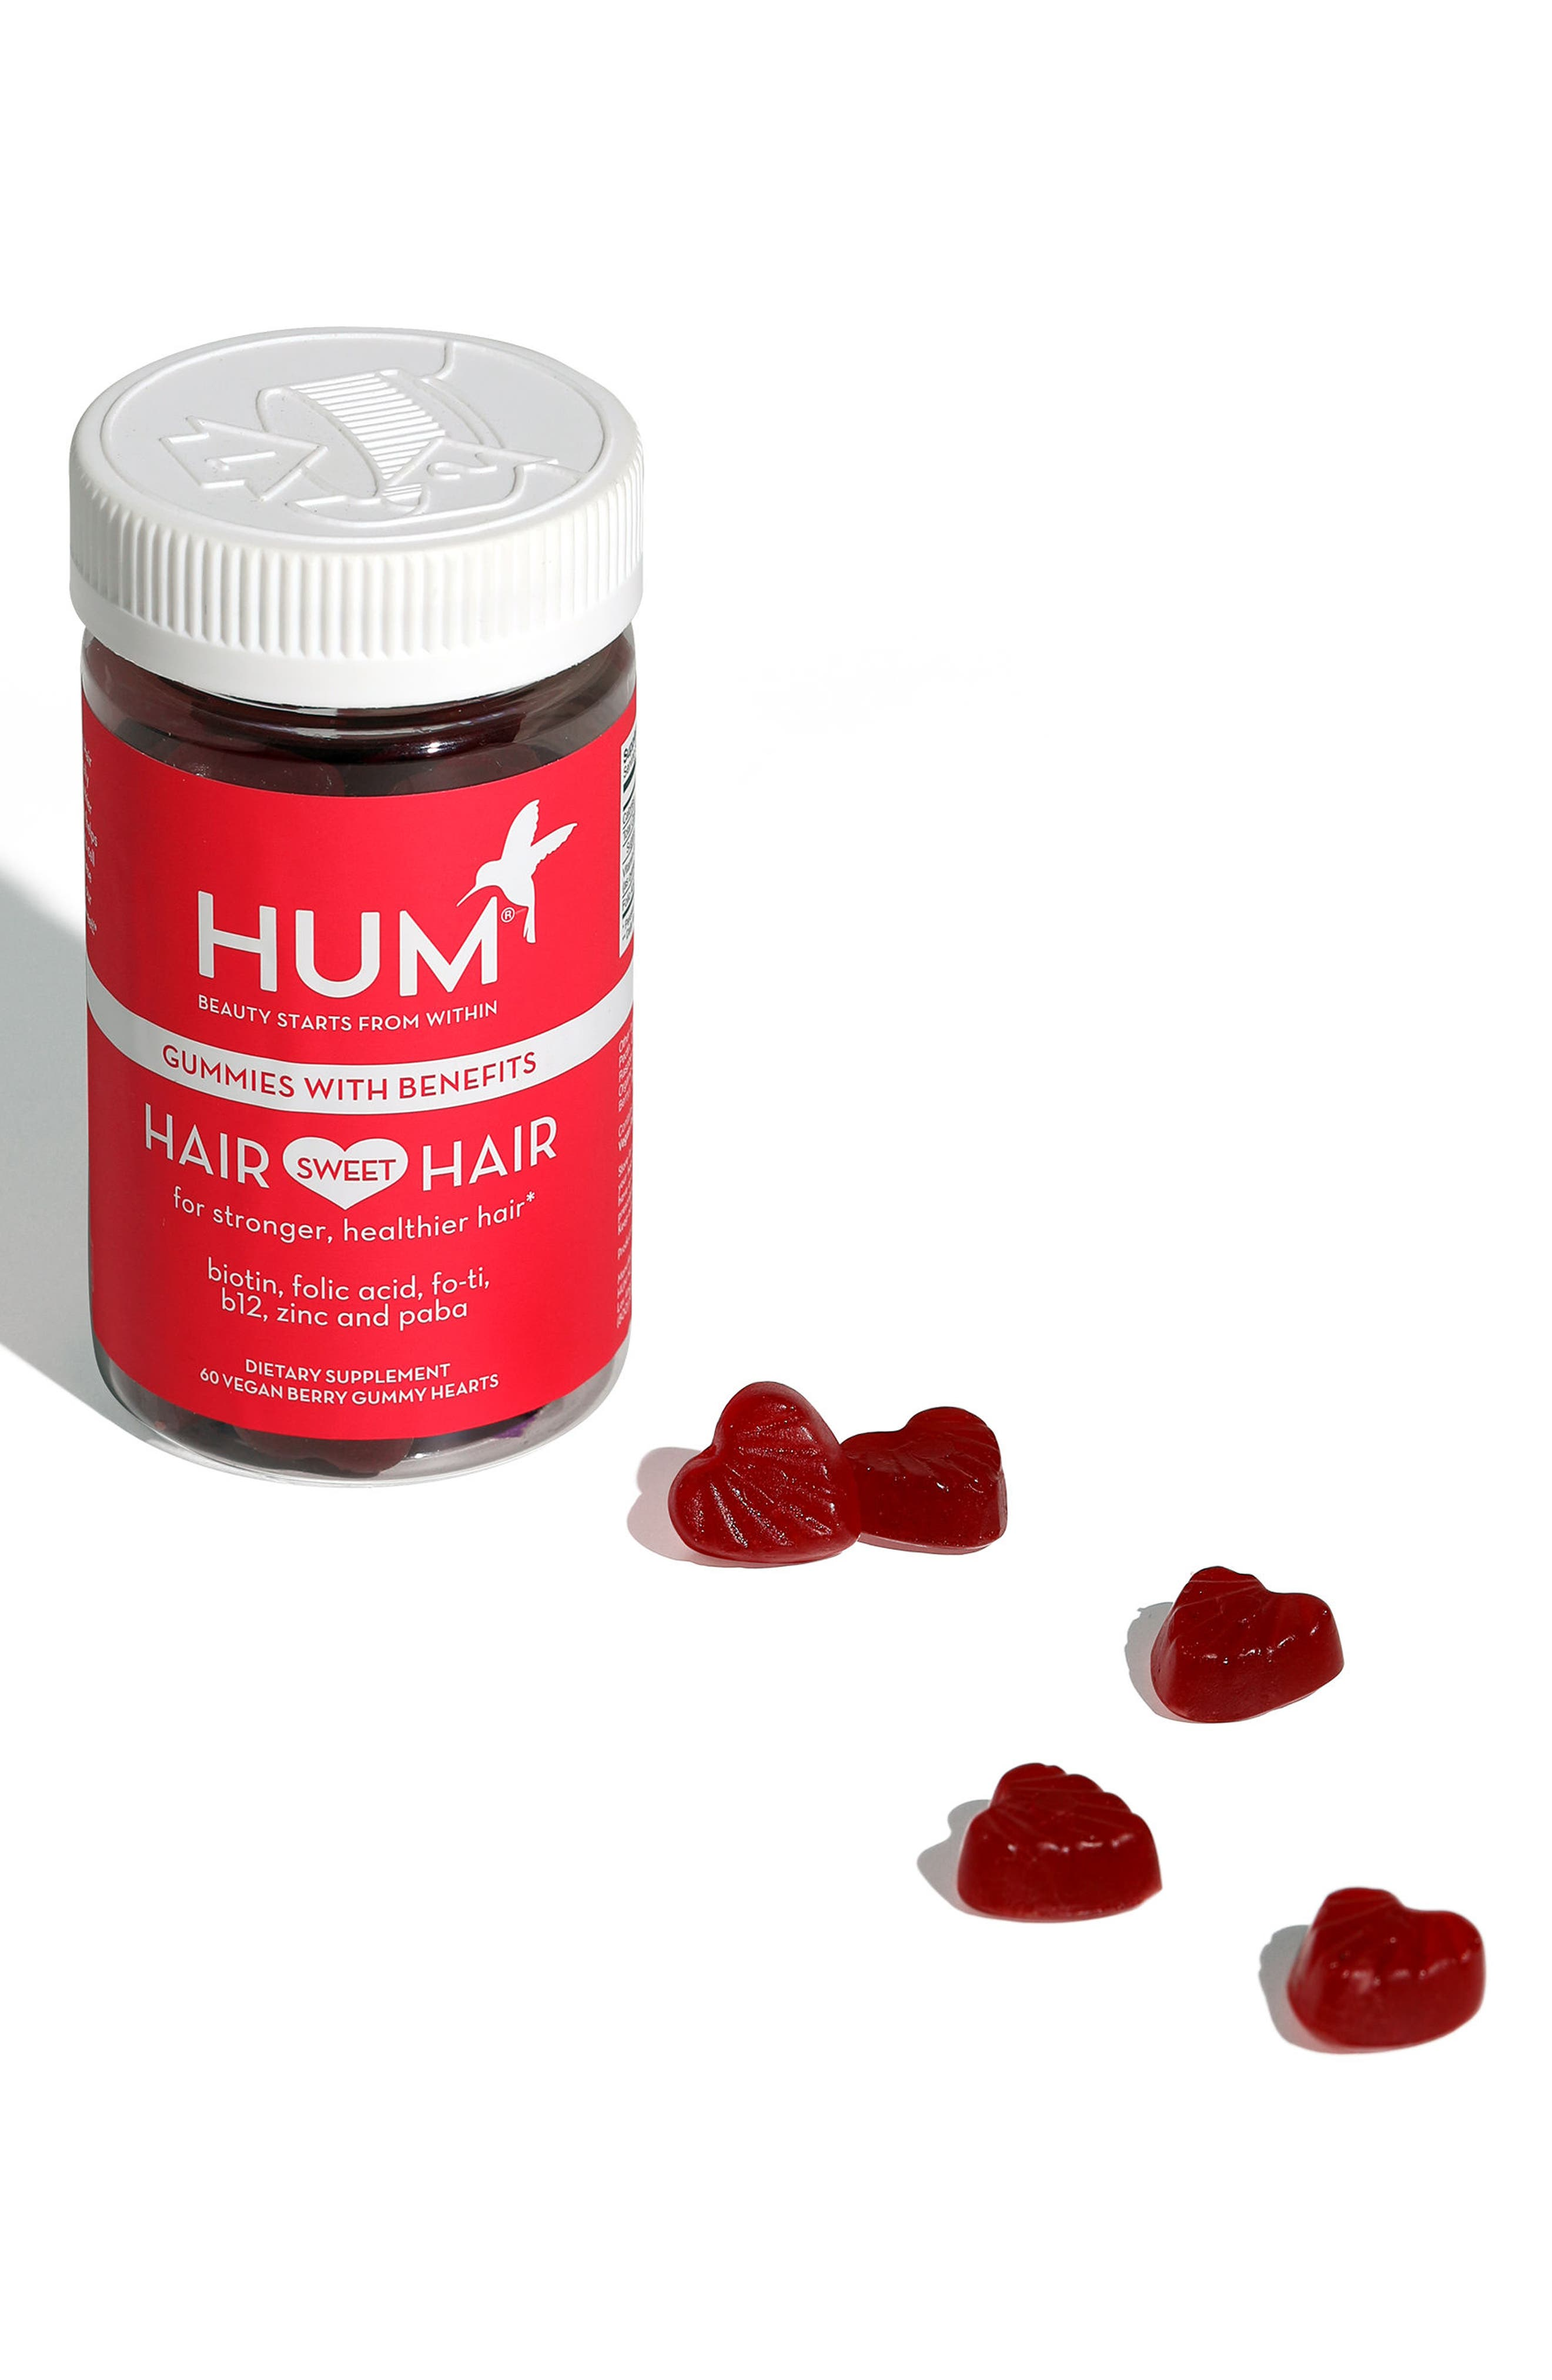 Hair Sweet Hair Gummies Supplement for Healthy Hair,                             Alternate thumbnail 5, color,                             No Color